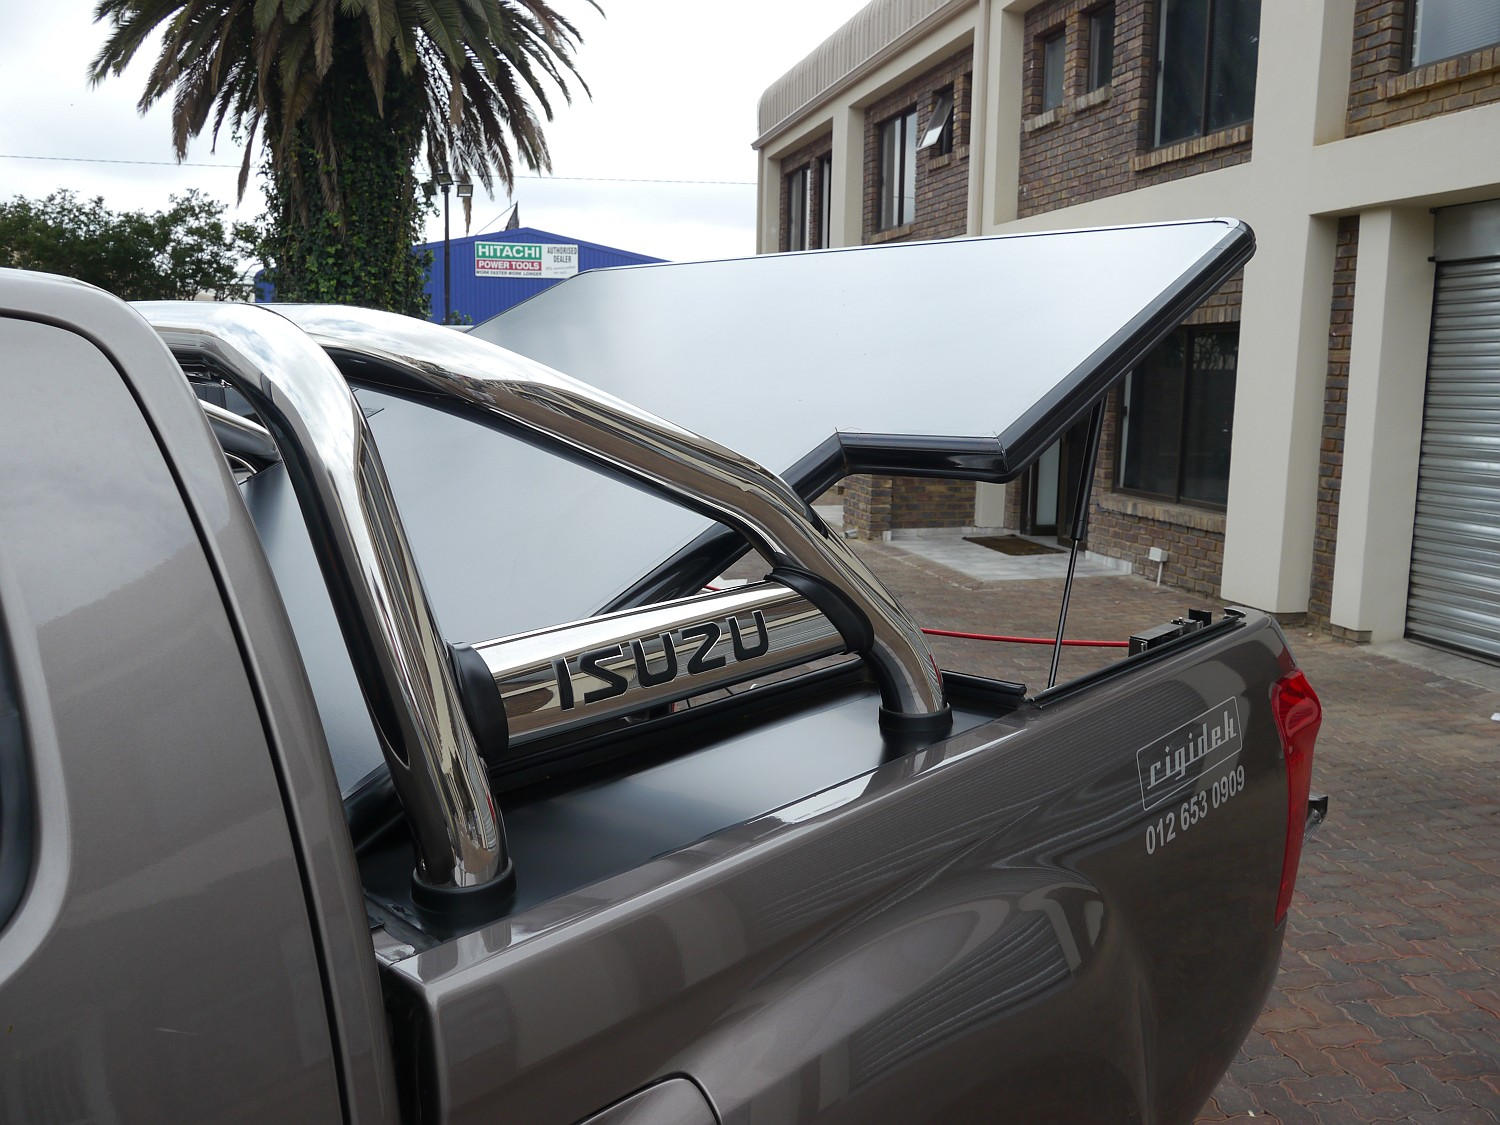 Rigidek Laderaumabdeckung - Isuzu D-Max - Double Cab mit Sports Bar 1002.JPG